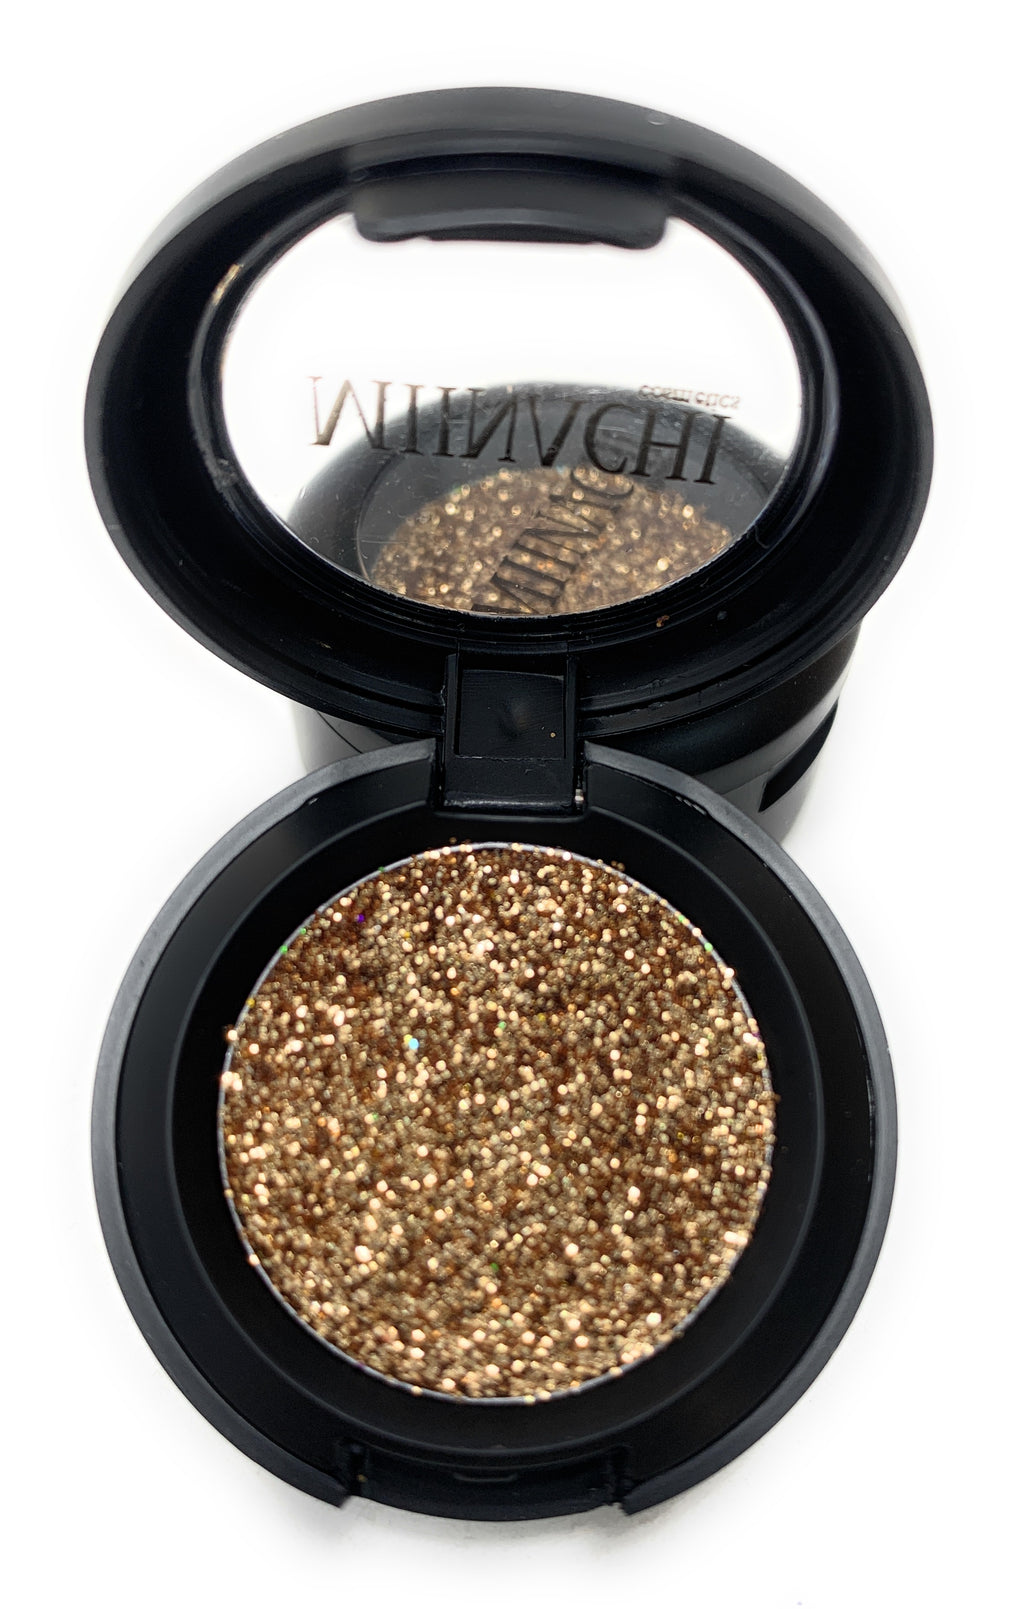 Single Pressed Glitter in the shade Champagne, No Glue Needed, In Compact, Pigmented, No Fall Out, Glitter, Cosmetic Grade Glitter